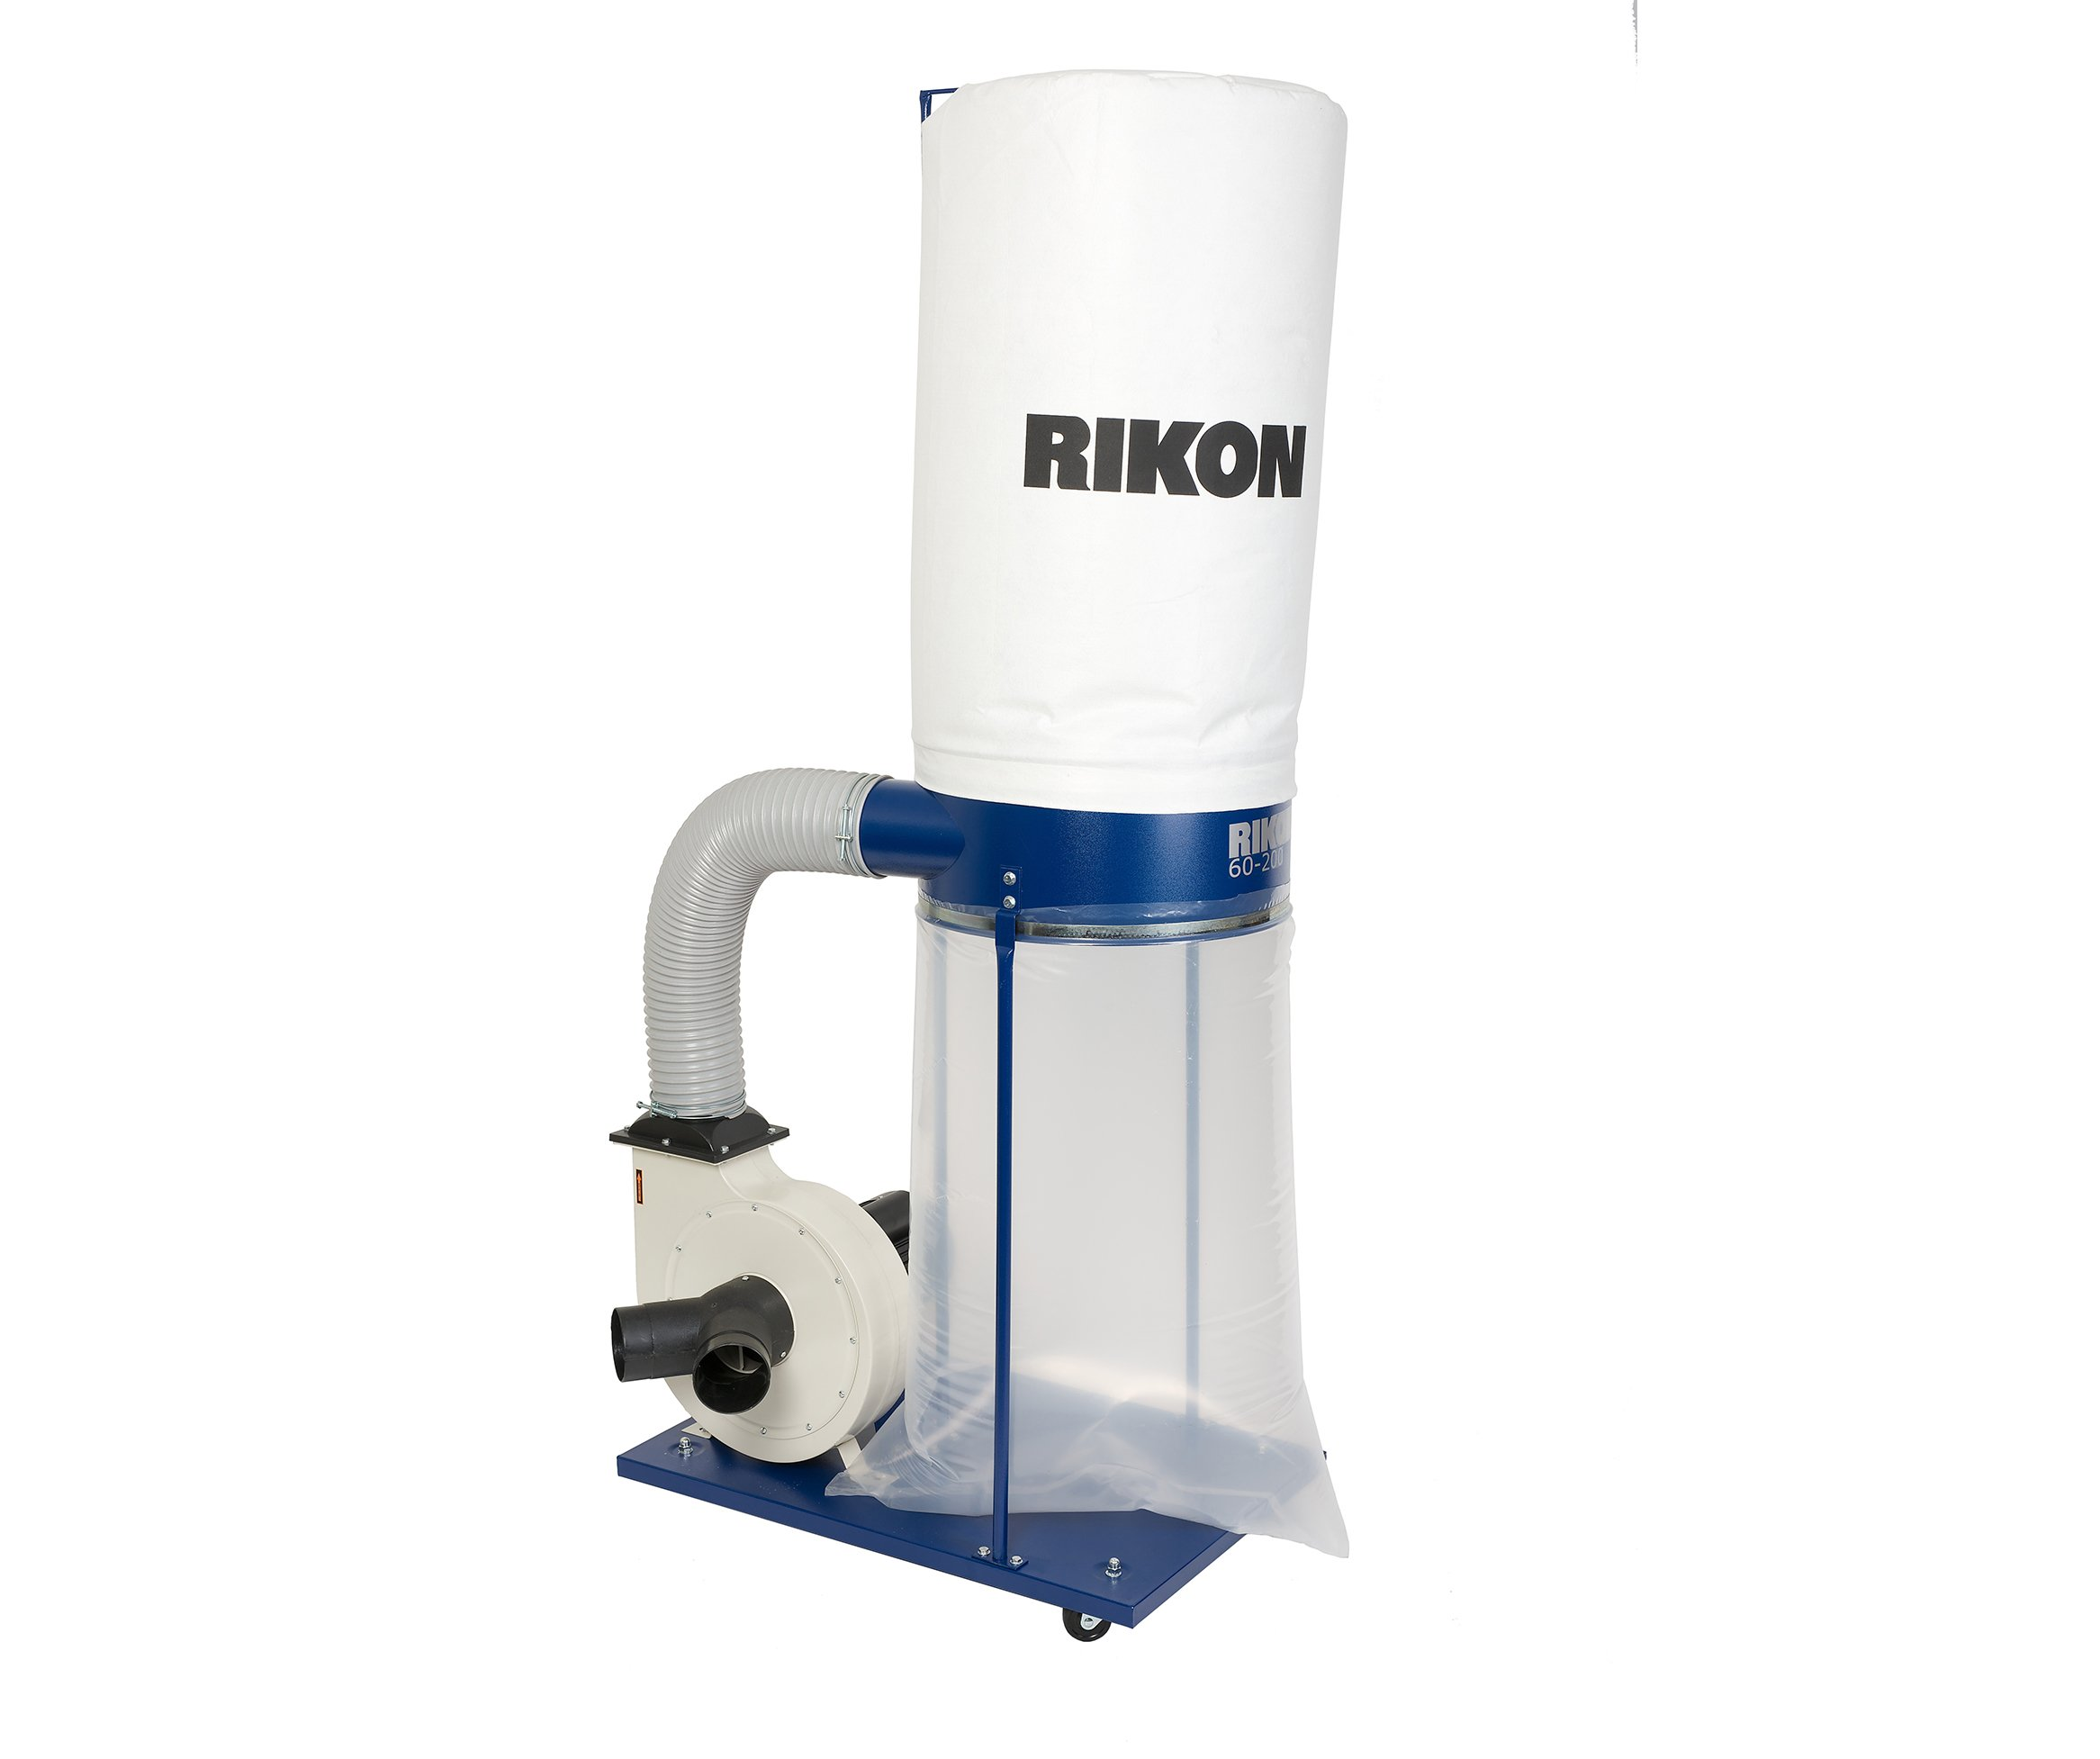 Rikon 60-200 2 HP Dust Collector